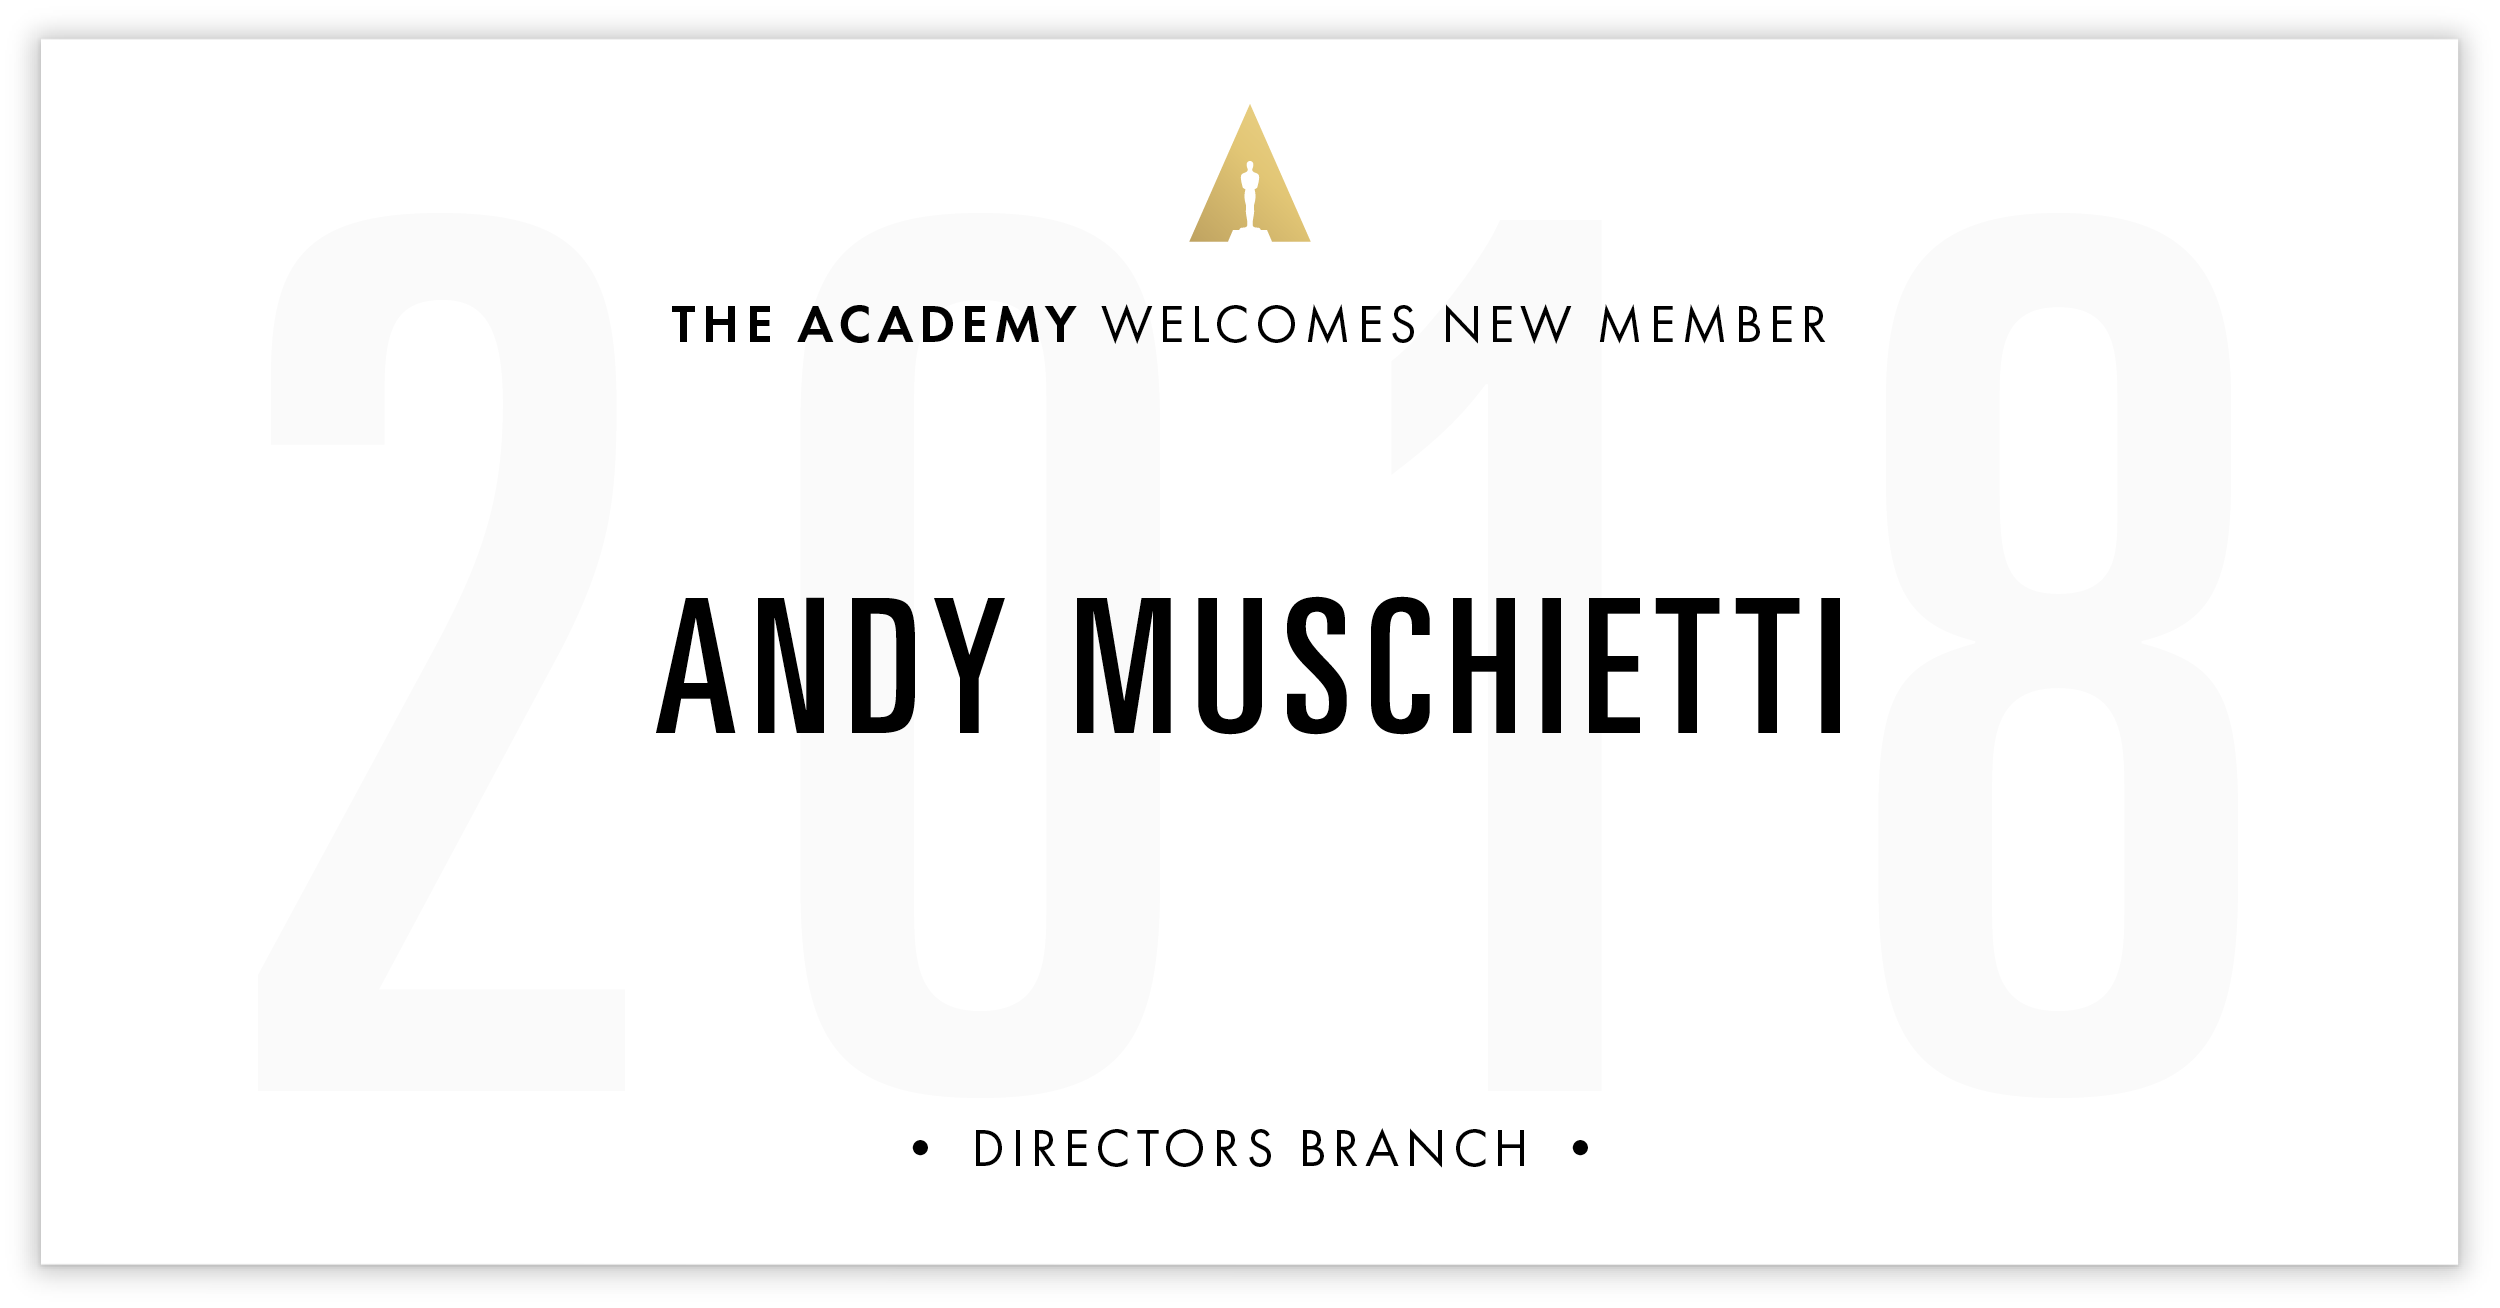 Andy Muschietti is invited!